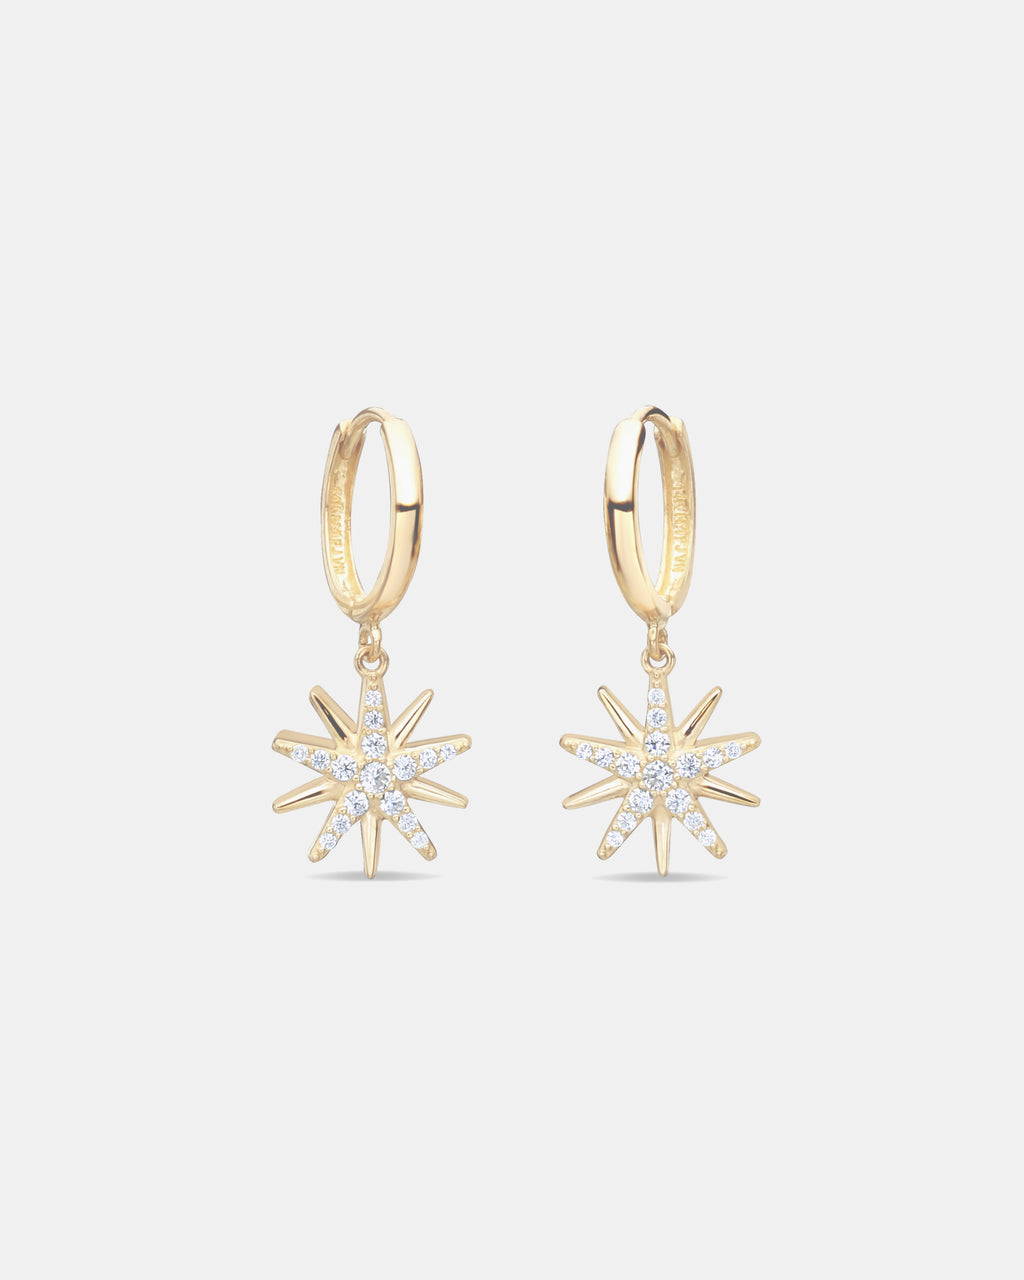 NME1012 - STARBURST DANGLE HOOPS - accessories - fine jewelry - Shine bright in our Starburst Dangle Hoops. Crafted from 14-karat gold with cubic zirconia detailing, these hoops will upgrade any outfit. Dress them up or down depending on the occasion.